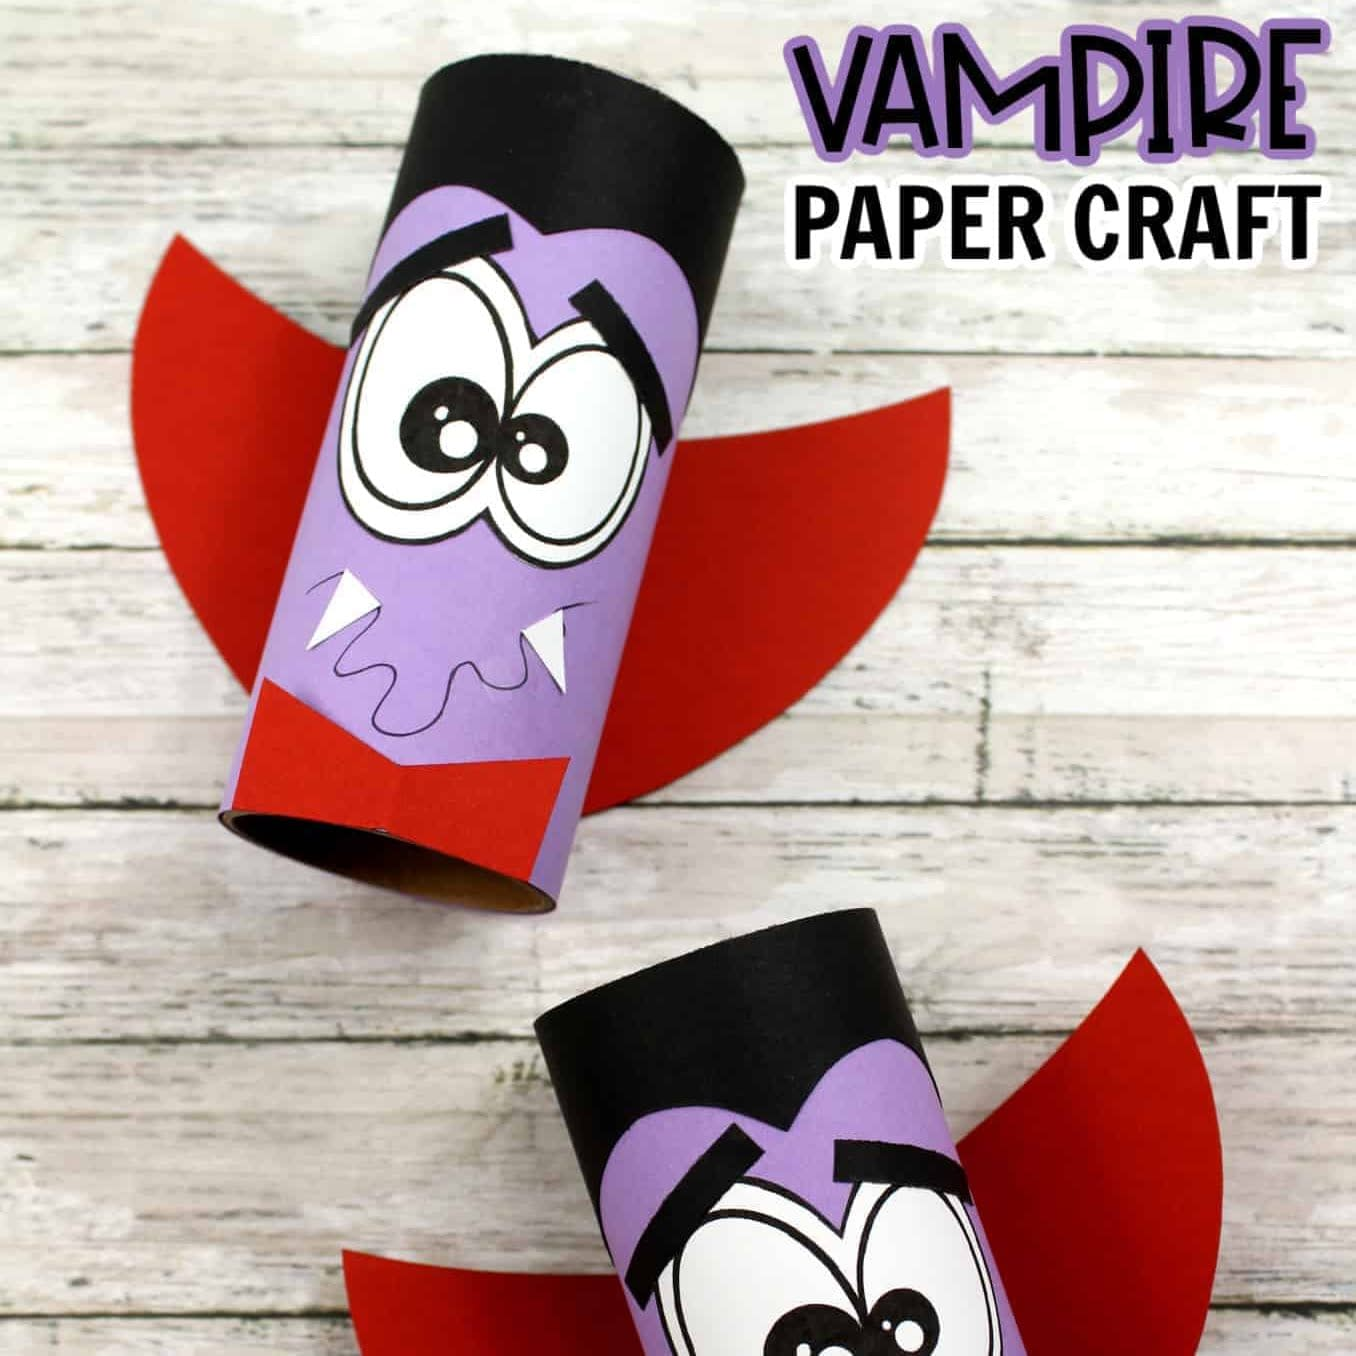 Vampire toilet roll. Halloween craft ideas for toddlers and preschoolers